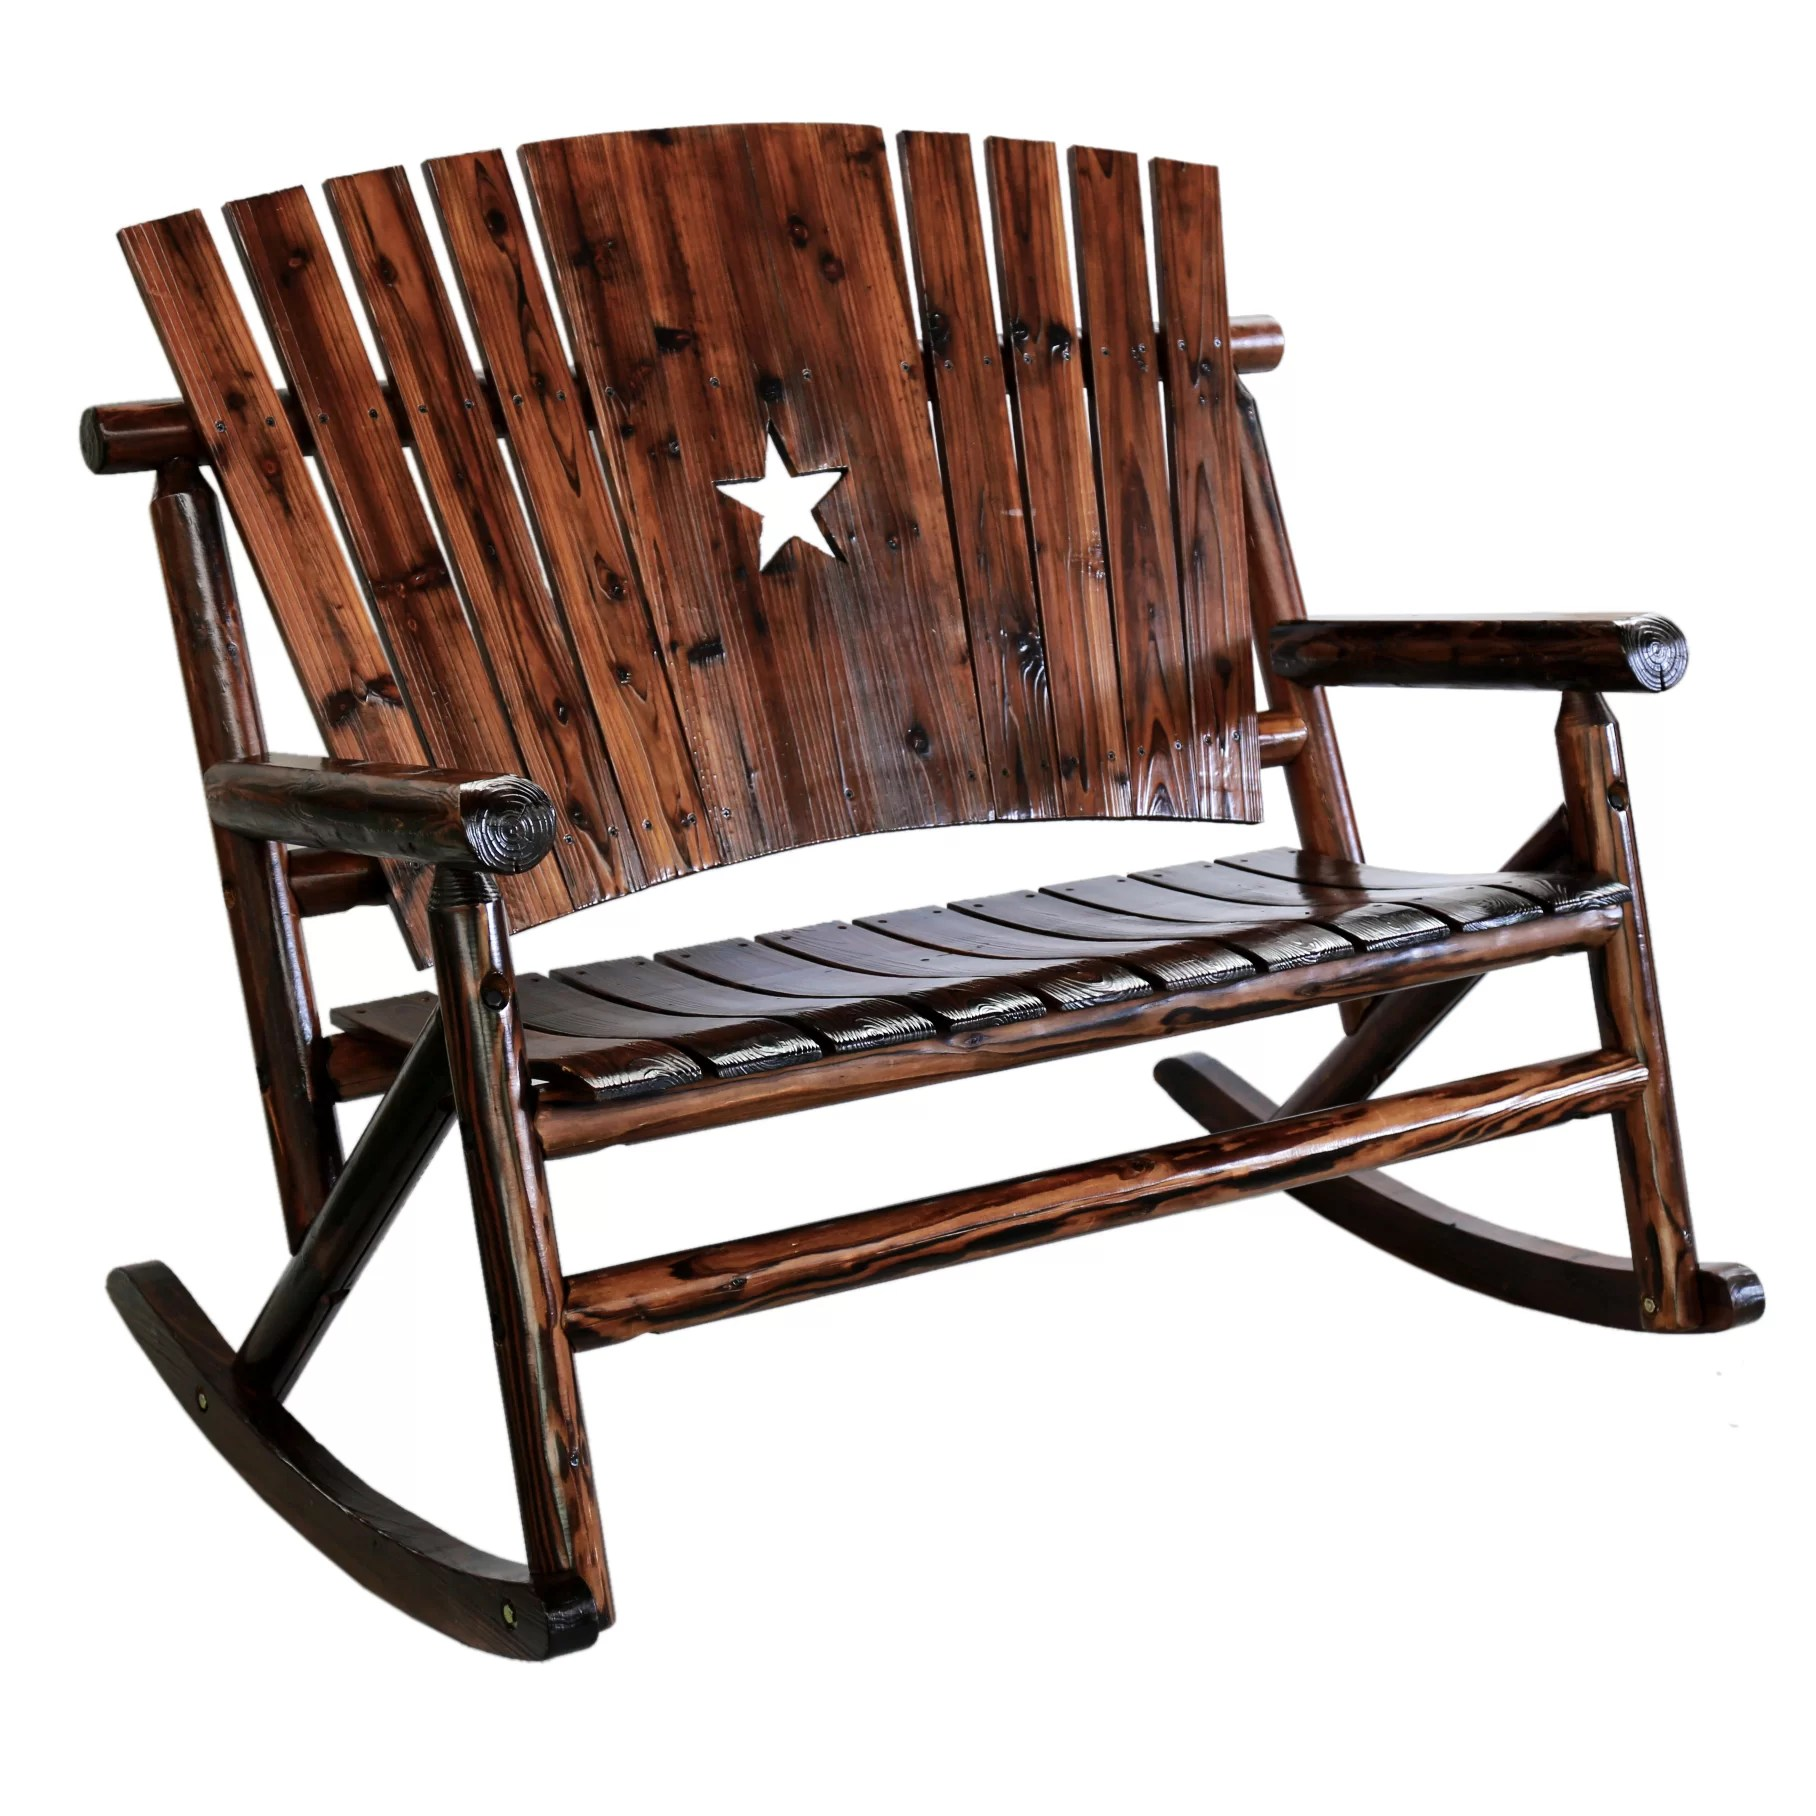 cracker barrel rocking chair reviews leather wing leighcountry char log star double ii